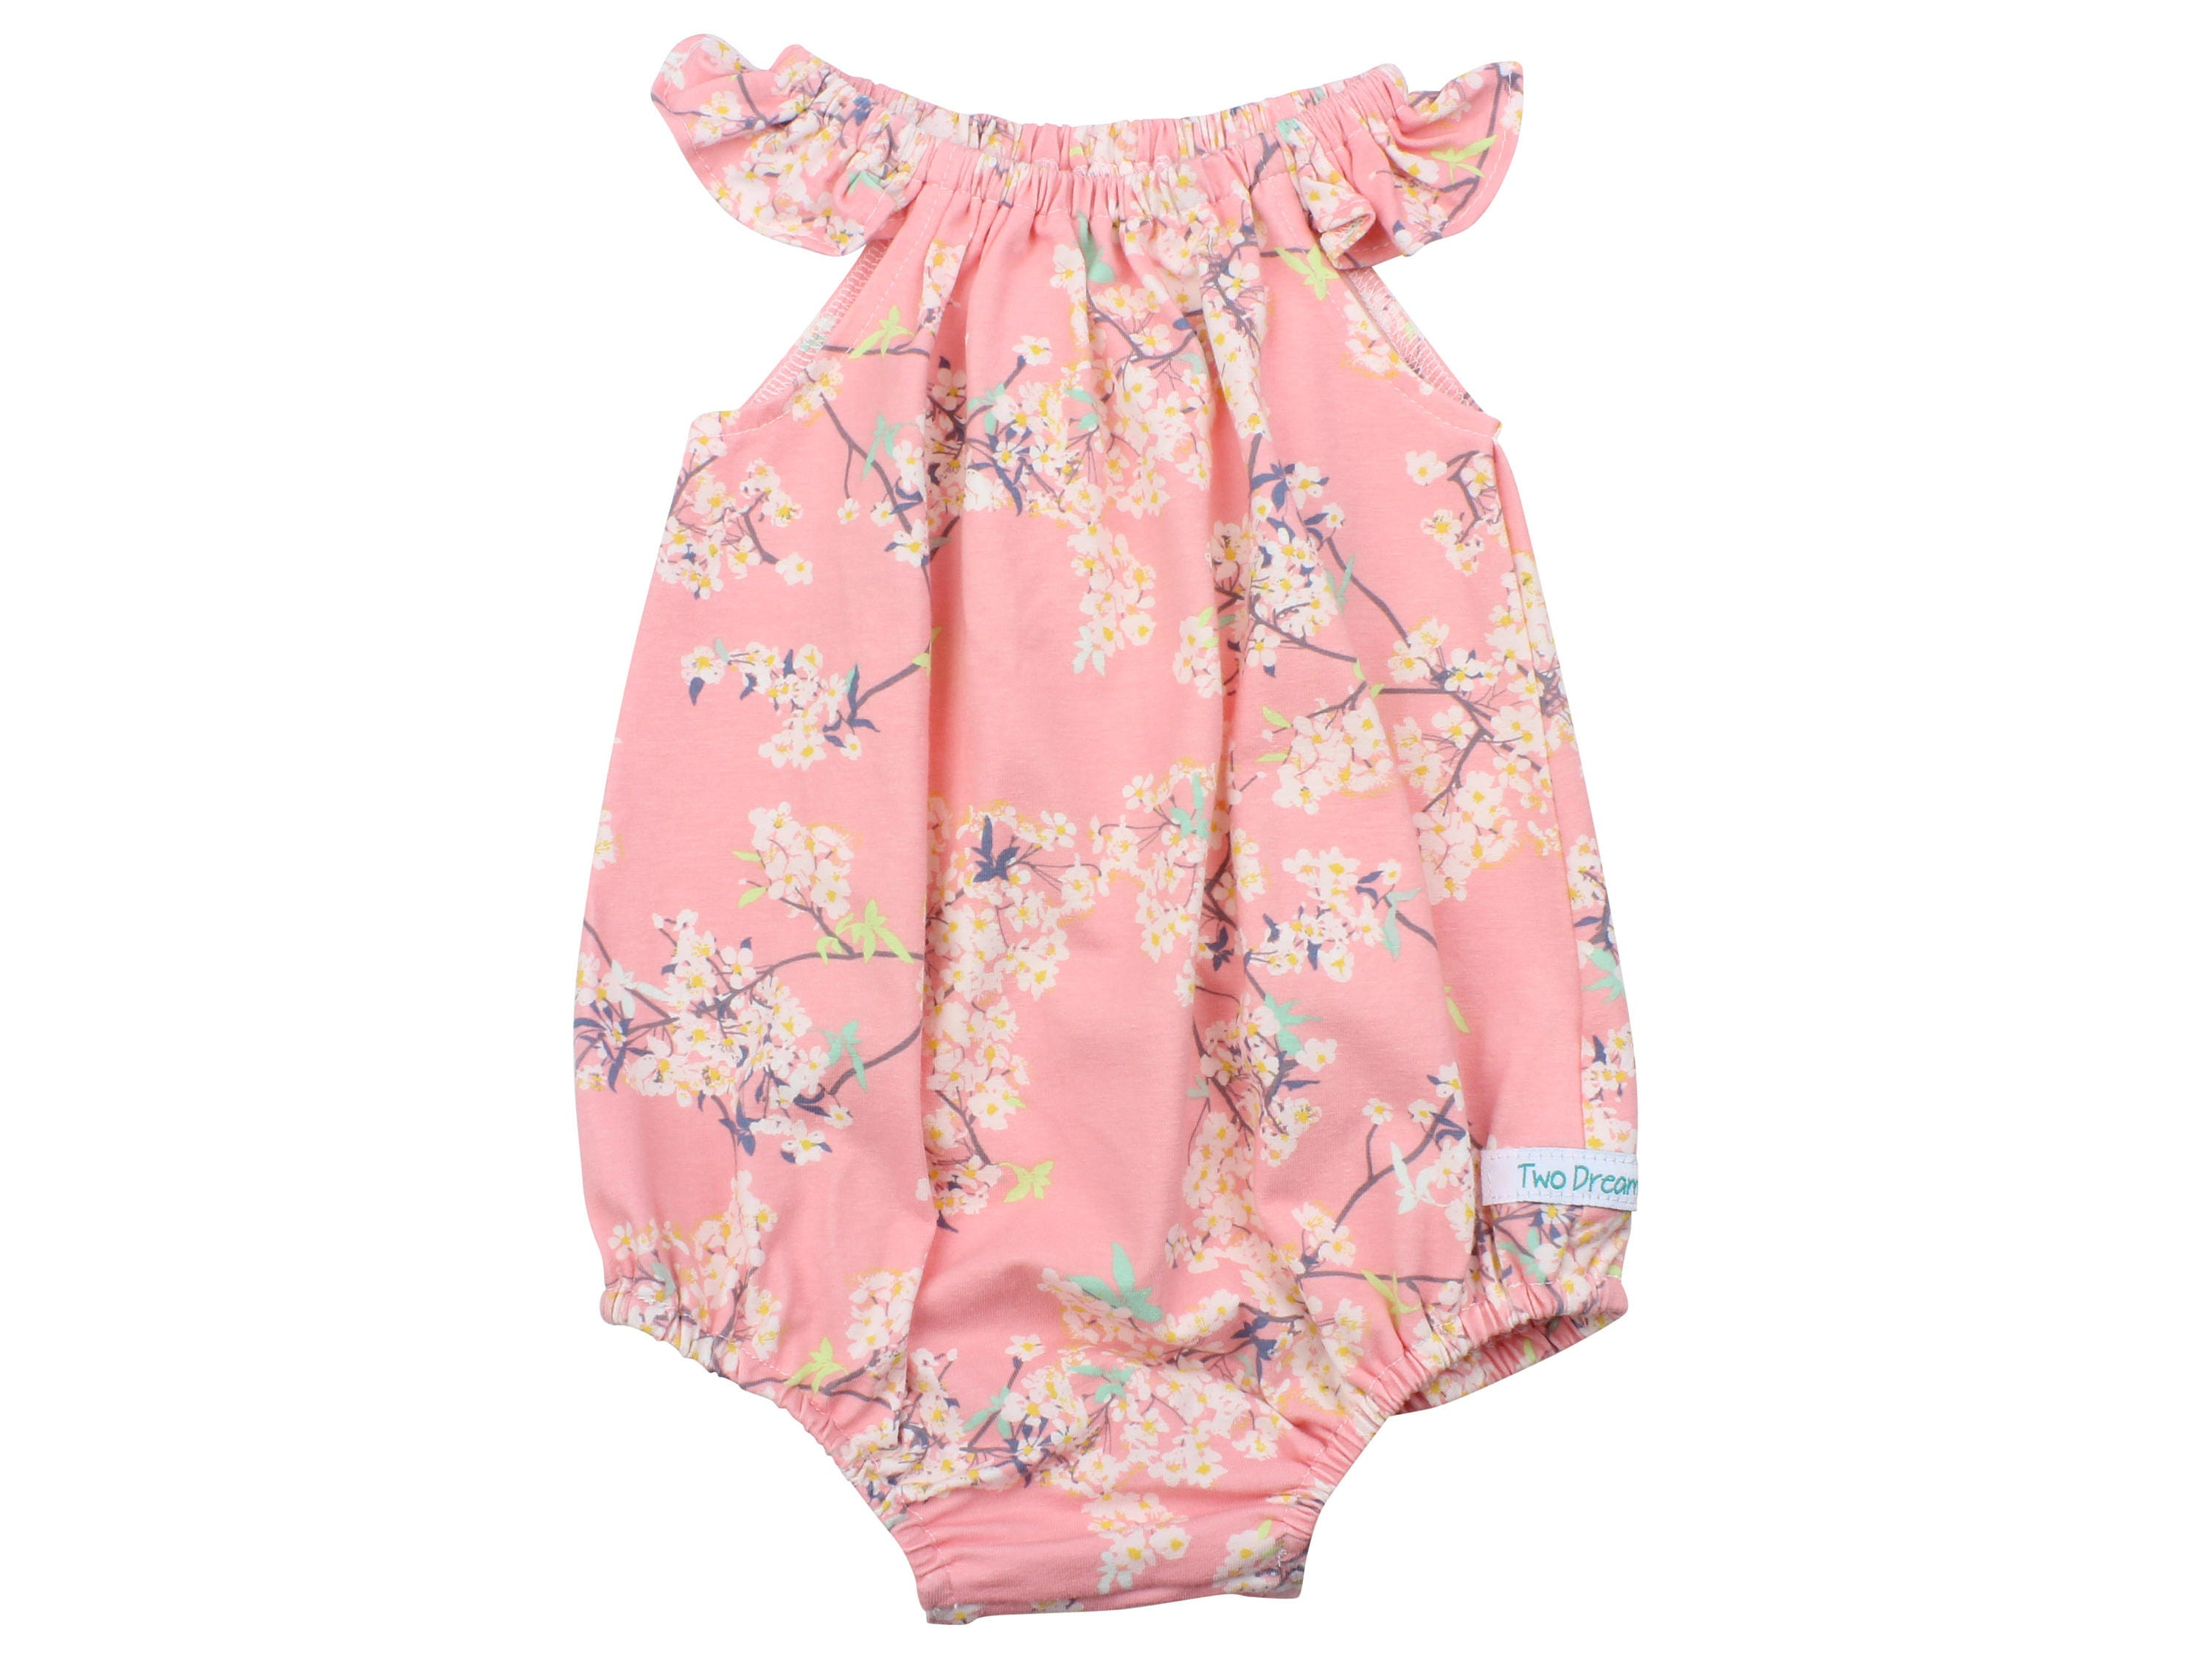 3482a5fd033e Baby Romper with Snaps Pink Cherry Blossom Baby Romper Summer ...